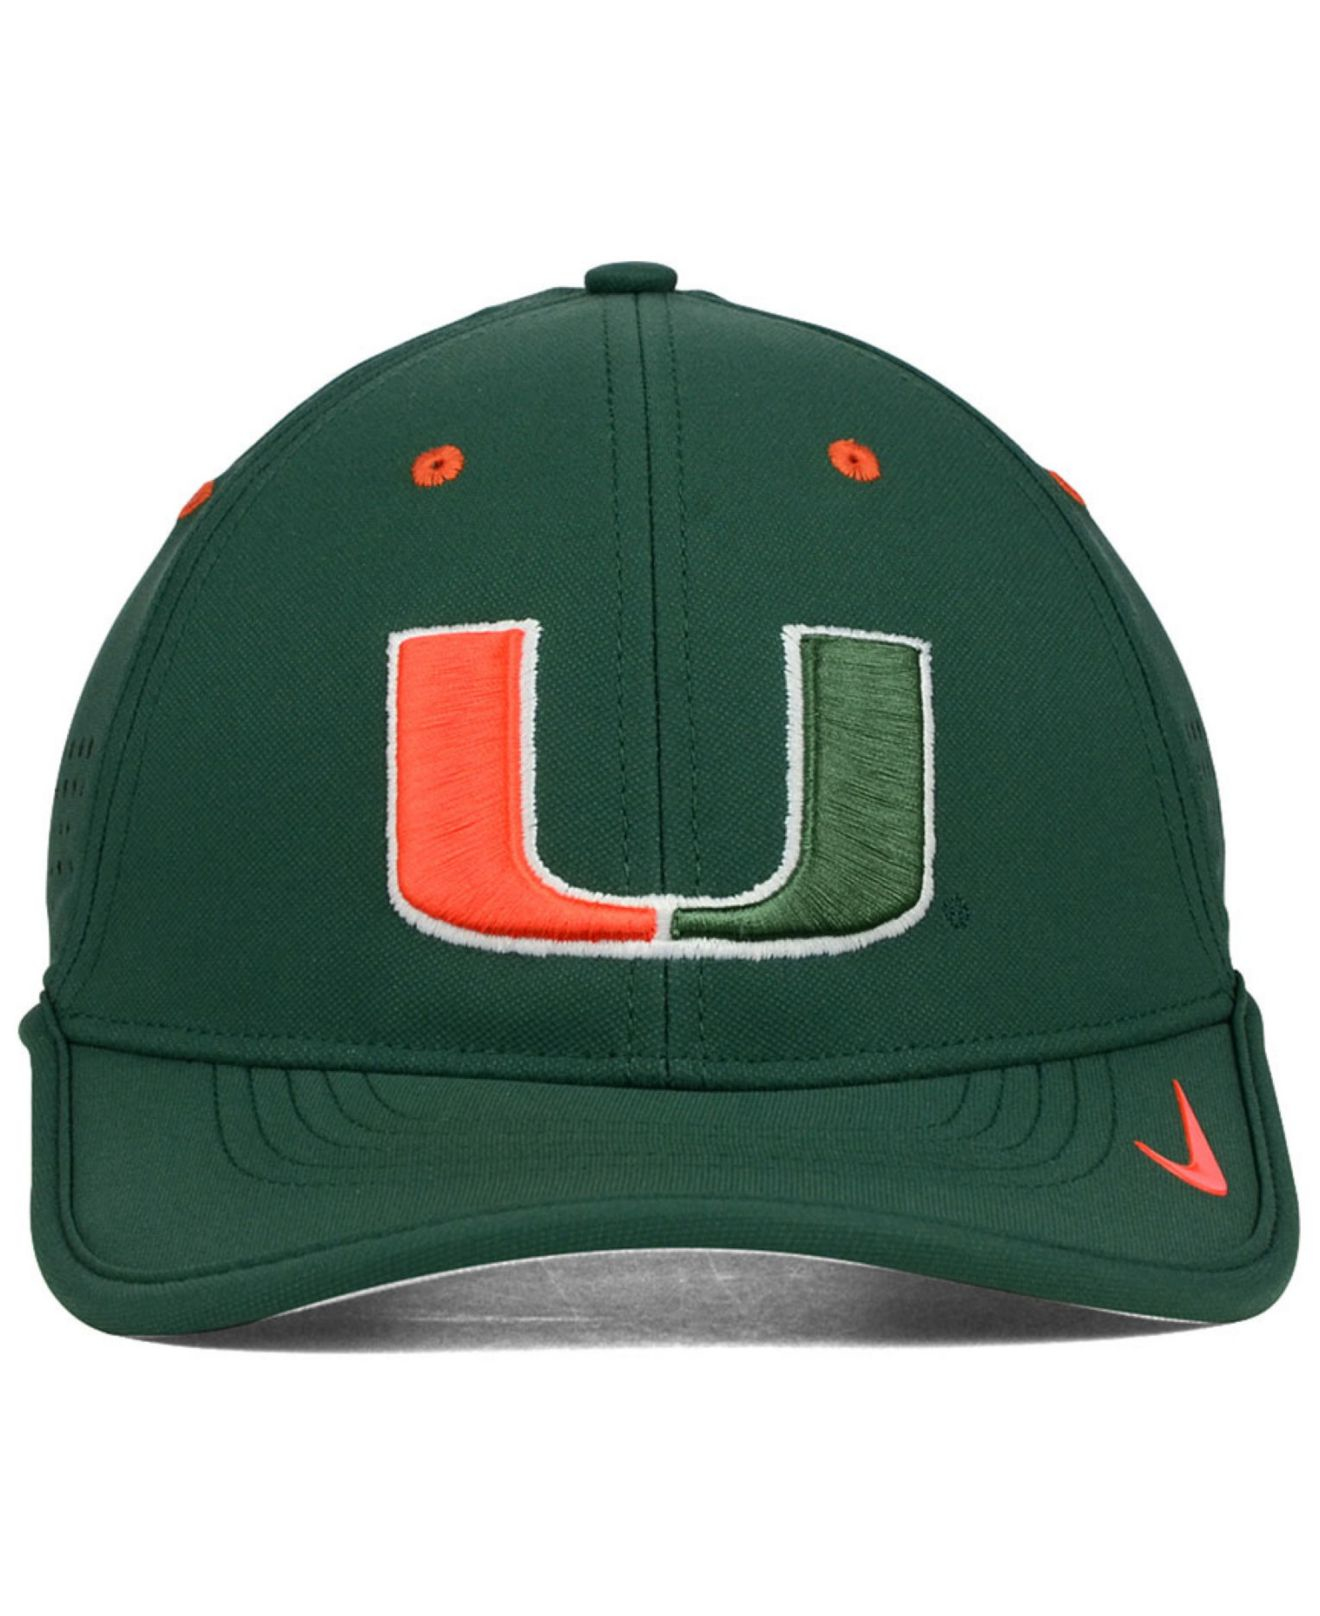 Lyst - Nike Miami Hurricanes Dri-fit Coaches Cap in Green for Men 0f4d9101960